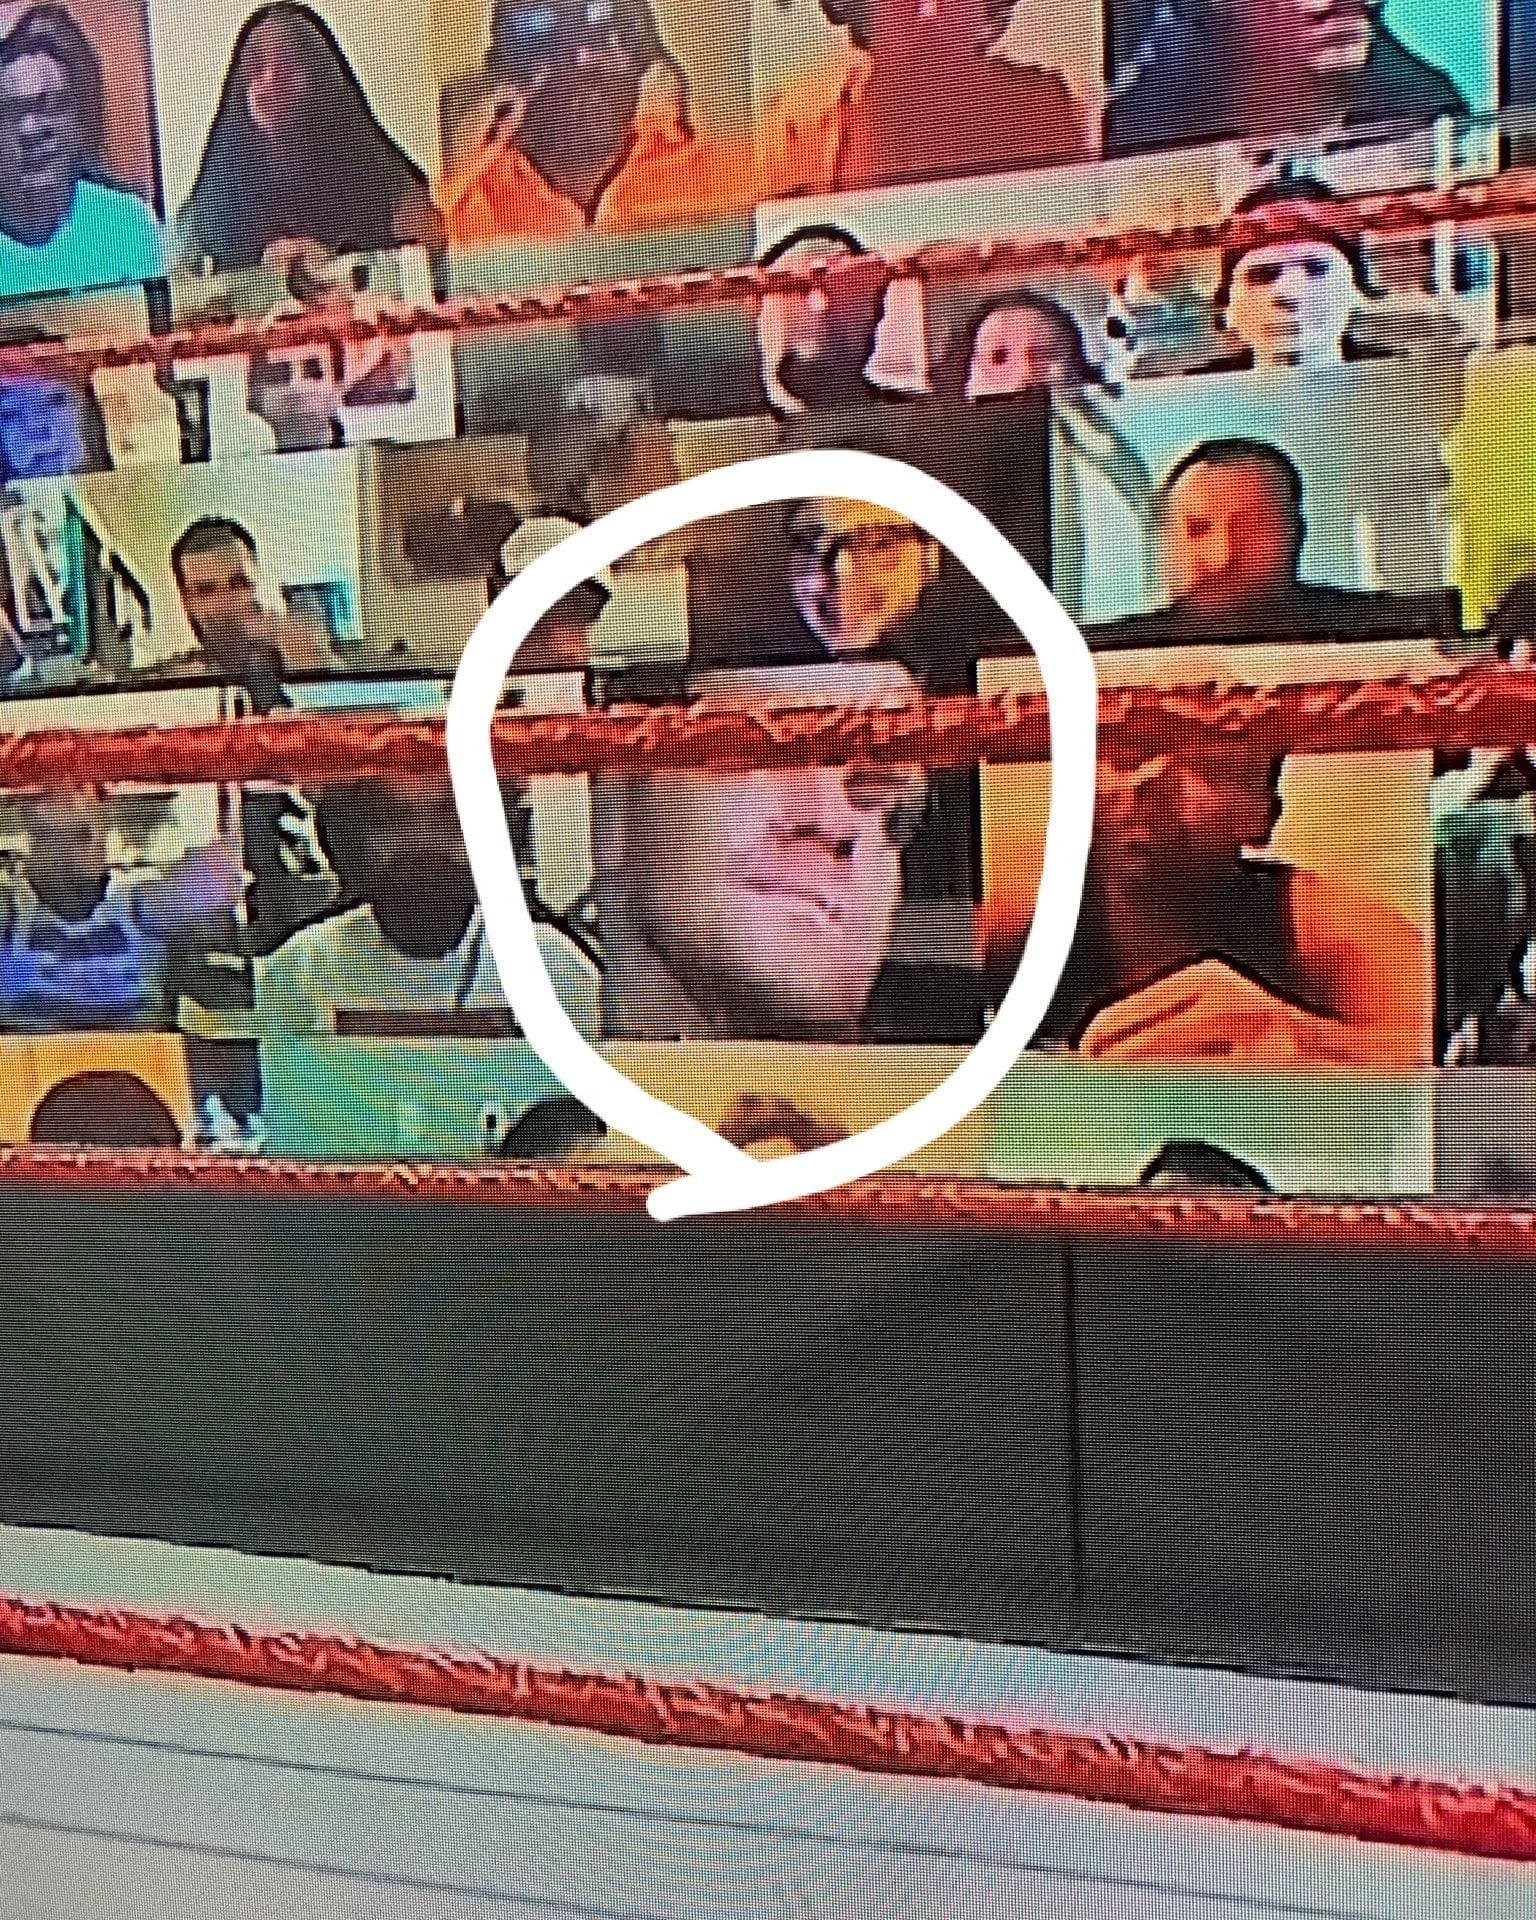 Fan Puts Chris Benoit On His Screen At The WWE ThunderDome On RAW After SummerSlam - 2